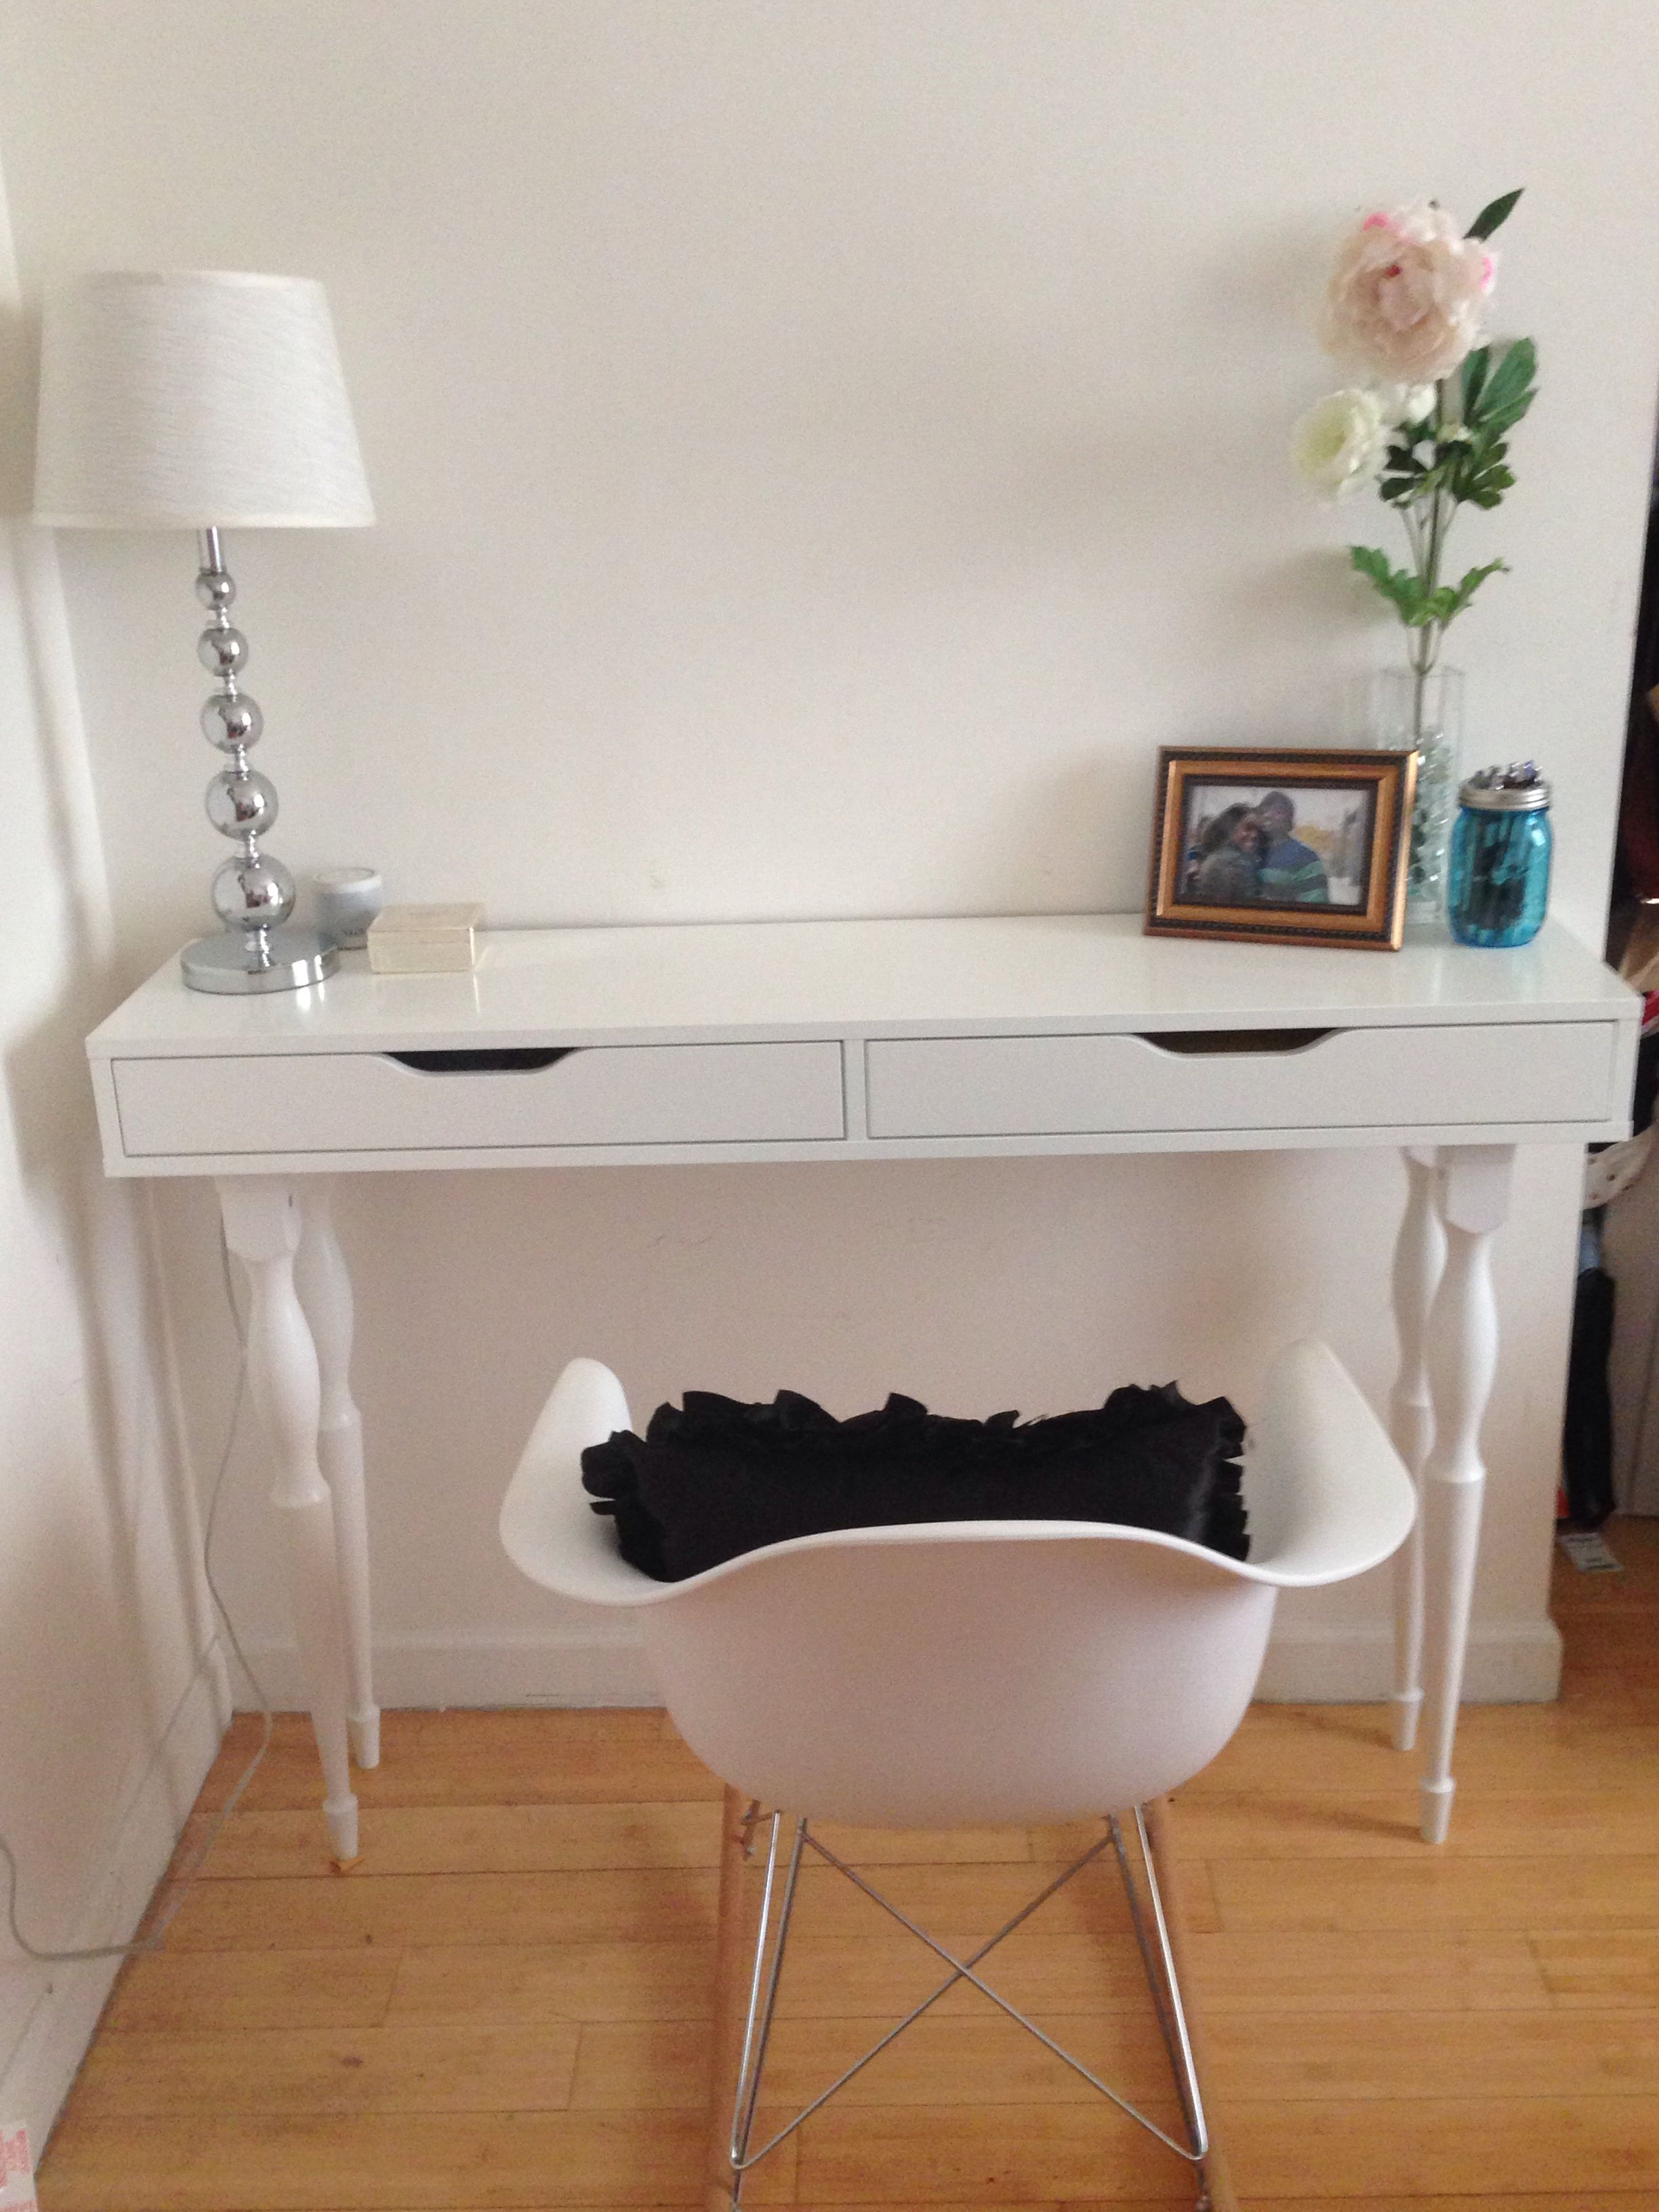 Exceptionnel Ikea Hack! Ekby Alex Shelf + 4 Nipen Table Legs U003d My DIY Desk/console/vanity  (mirror Coming Soon).